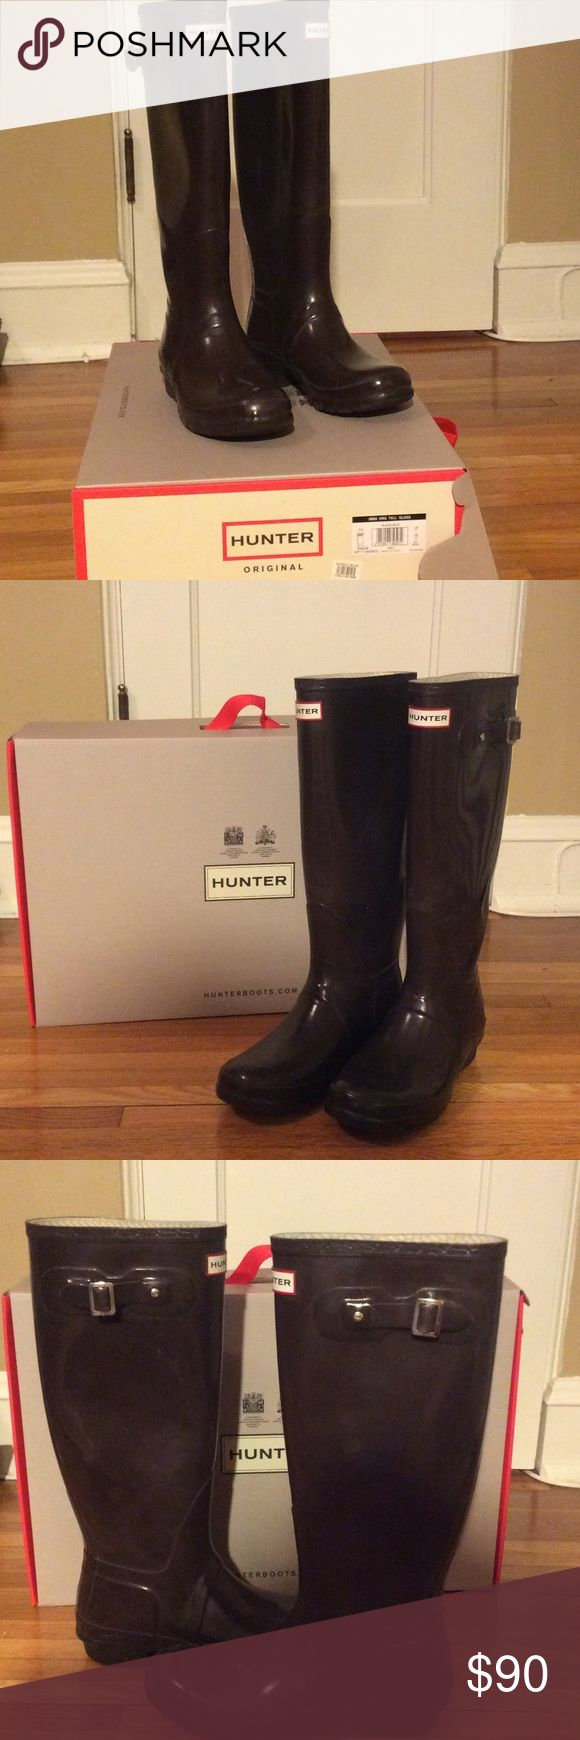 Hunter rain boots (tall) Tall Hunter rain boots. Pre-owned. Right boot side strap loose. Willing to negotiate price Hunter Shoes Winter & Rain Boots